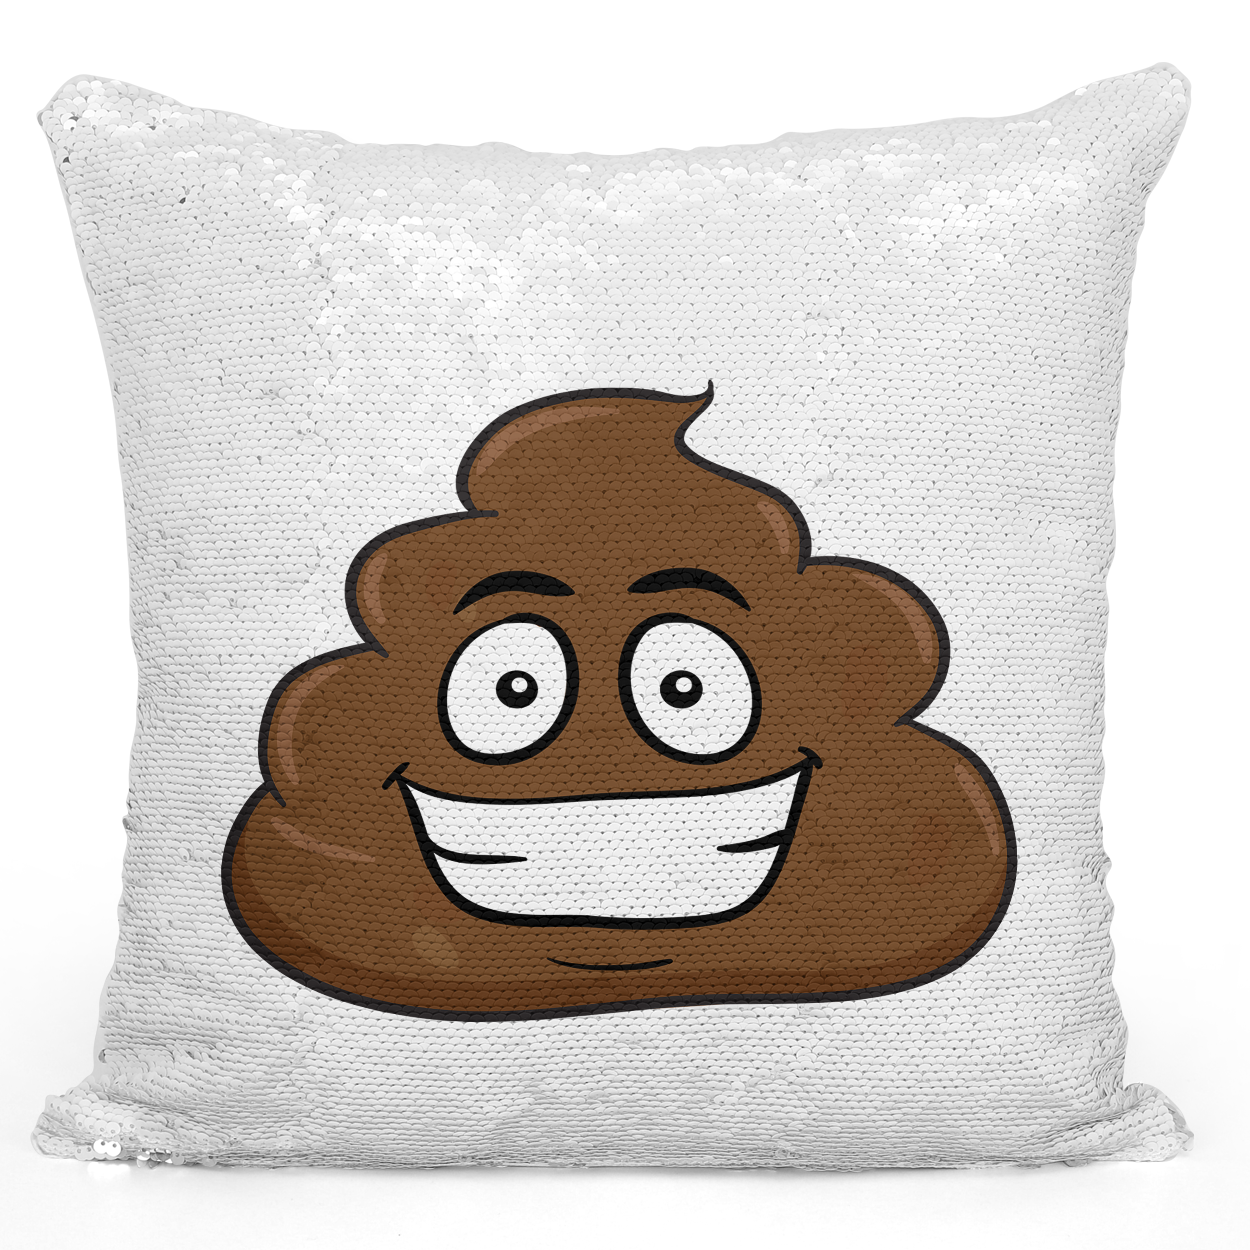 16x16 inch Sequin Throw Pillow Magic Flip Pillow Smilly Emoji Funny Poop Emoji For Friends Pillow Loud Universe